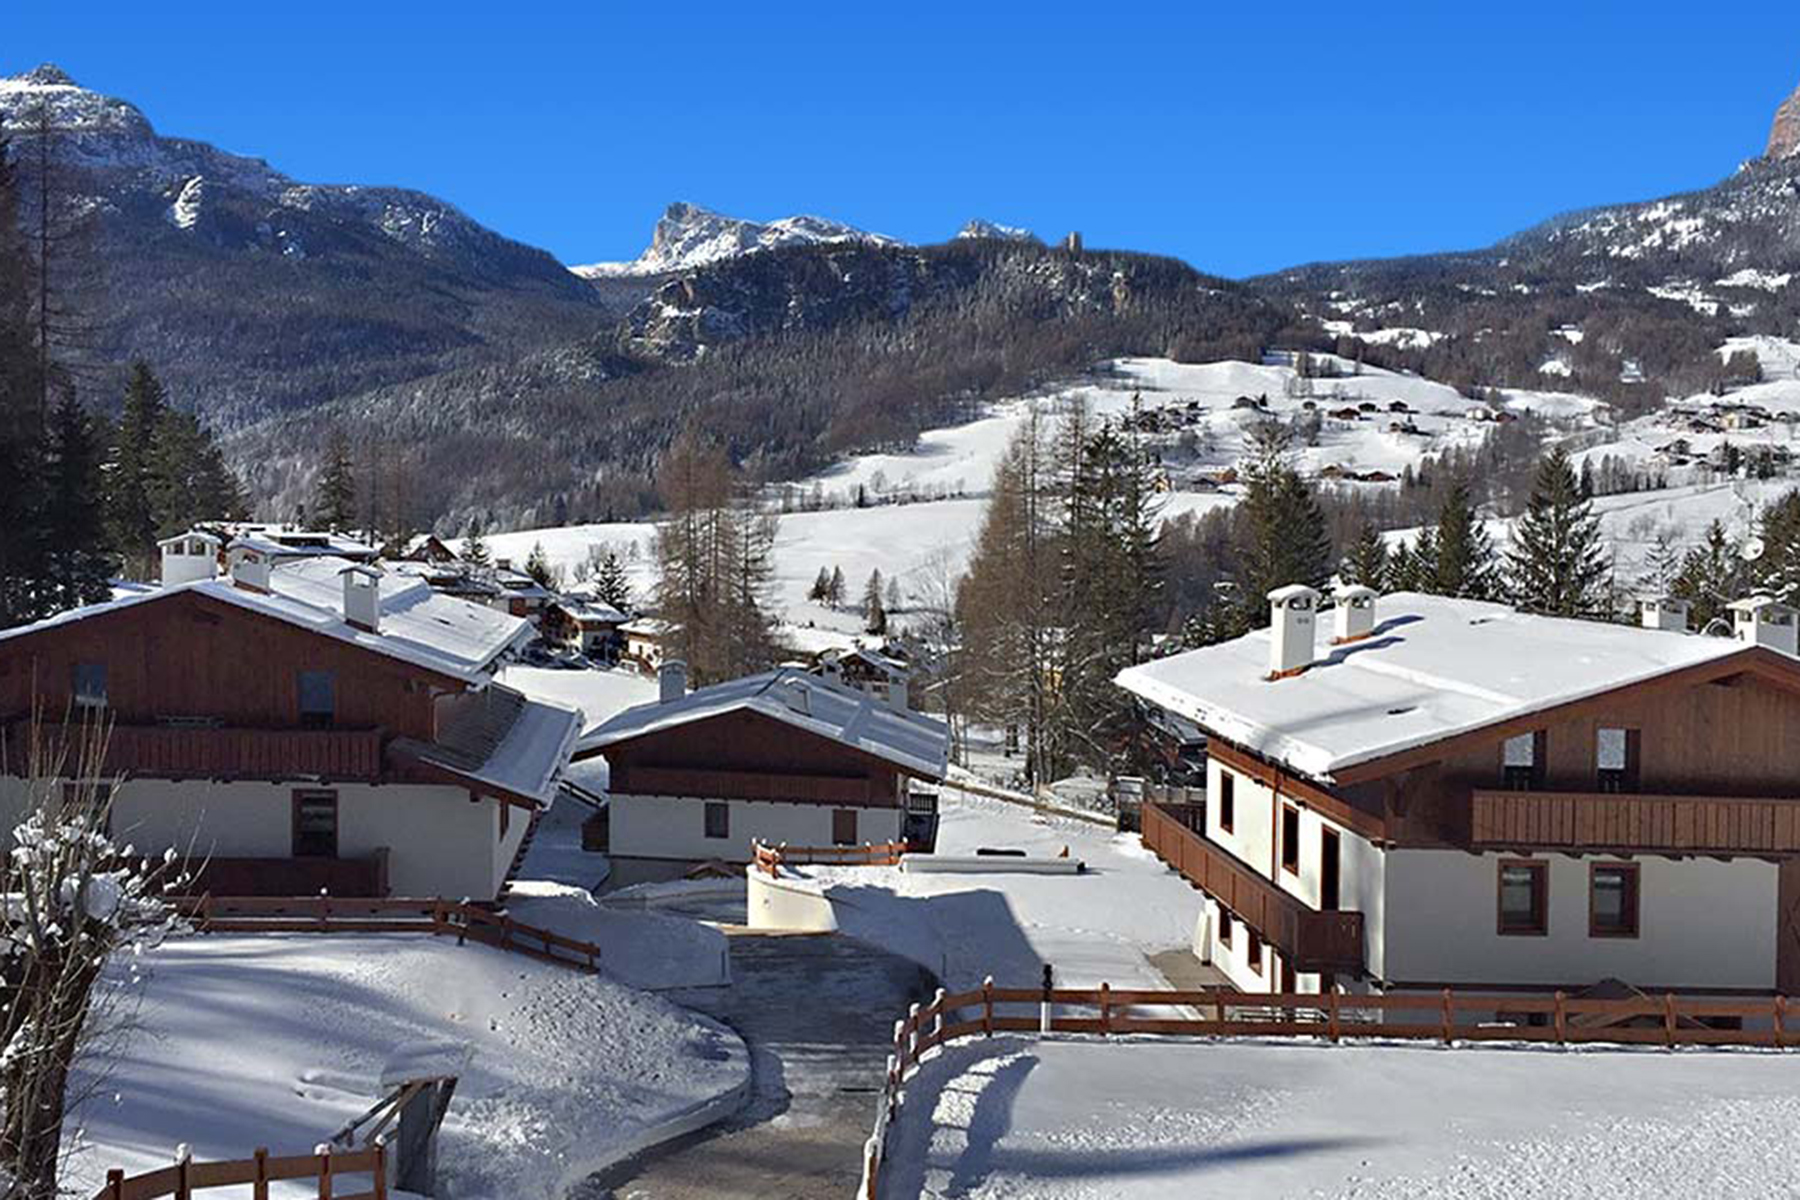 Single Family Home for Sale at Luxury chalet in Cortina d'Ampezzo Cortina D'Ampezzo, Belluno, Italy